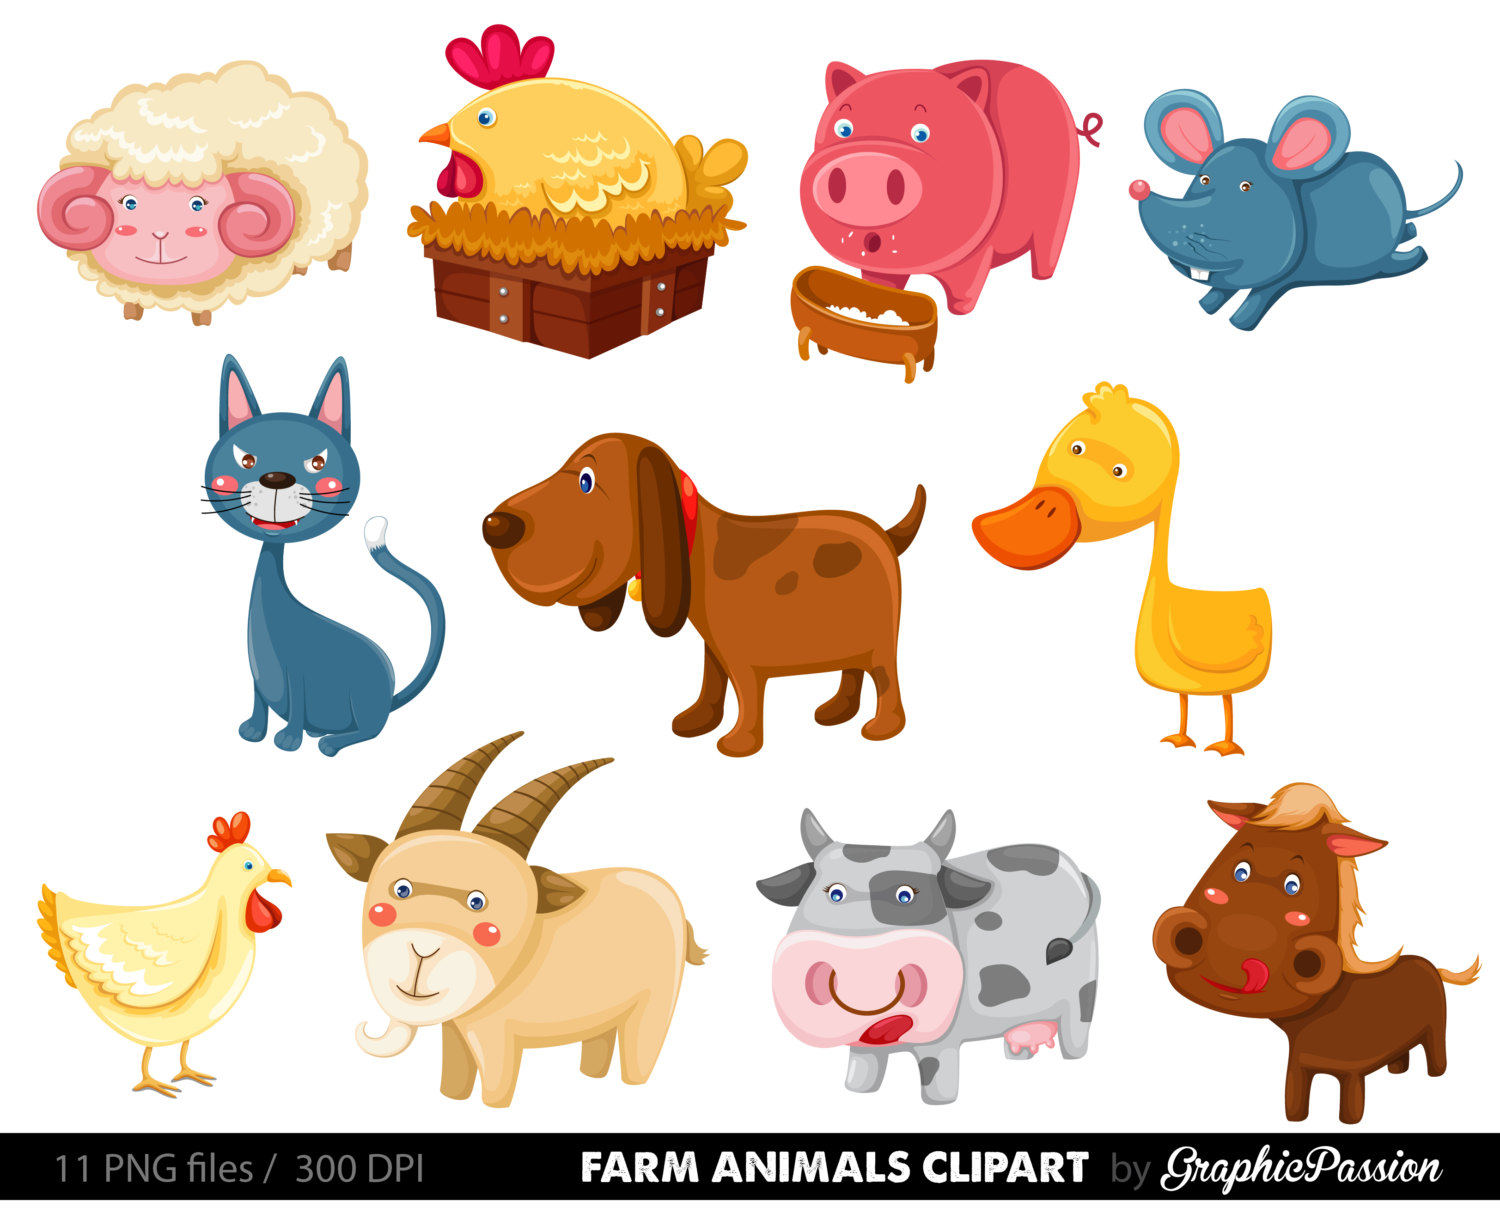 Farm Animals clipart Farm Barn 50% Horse Animals